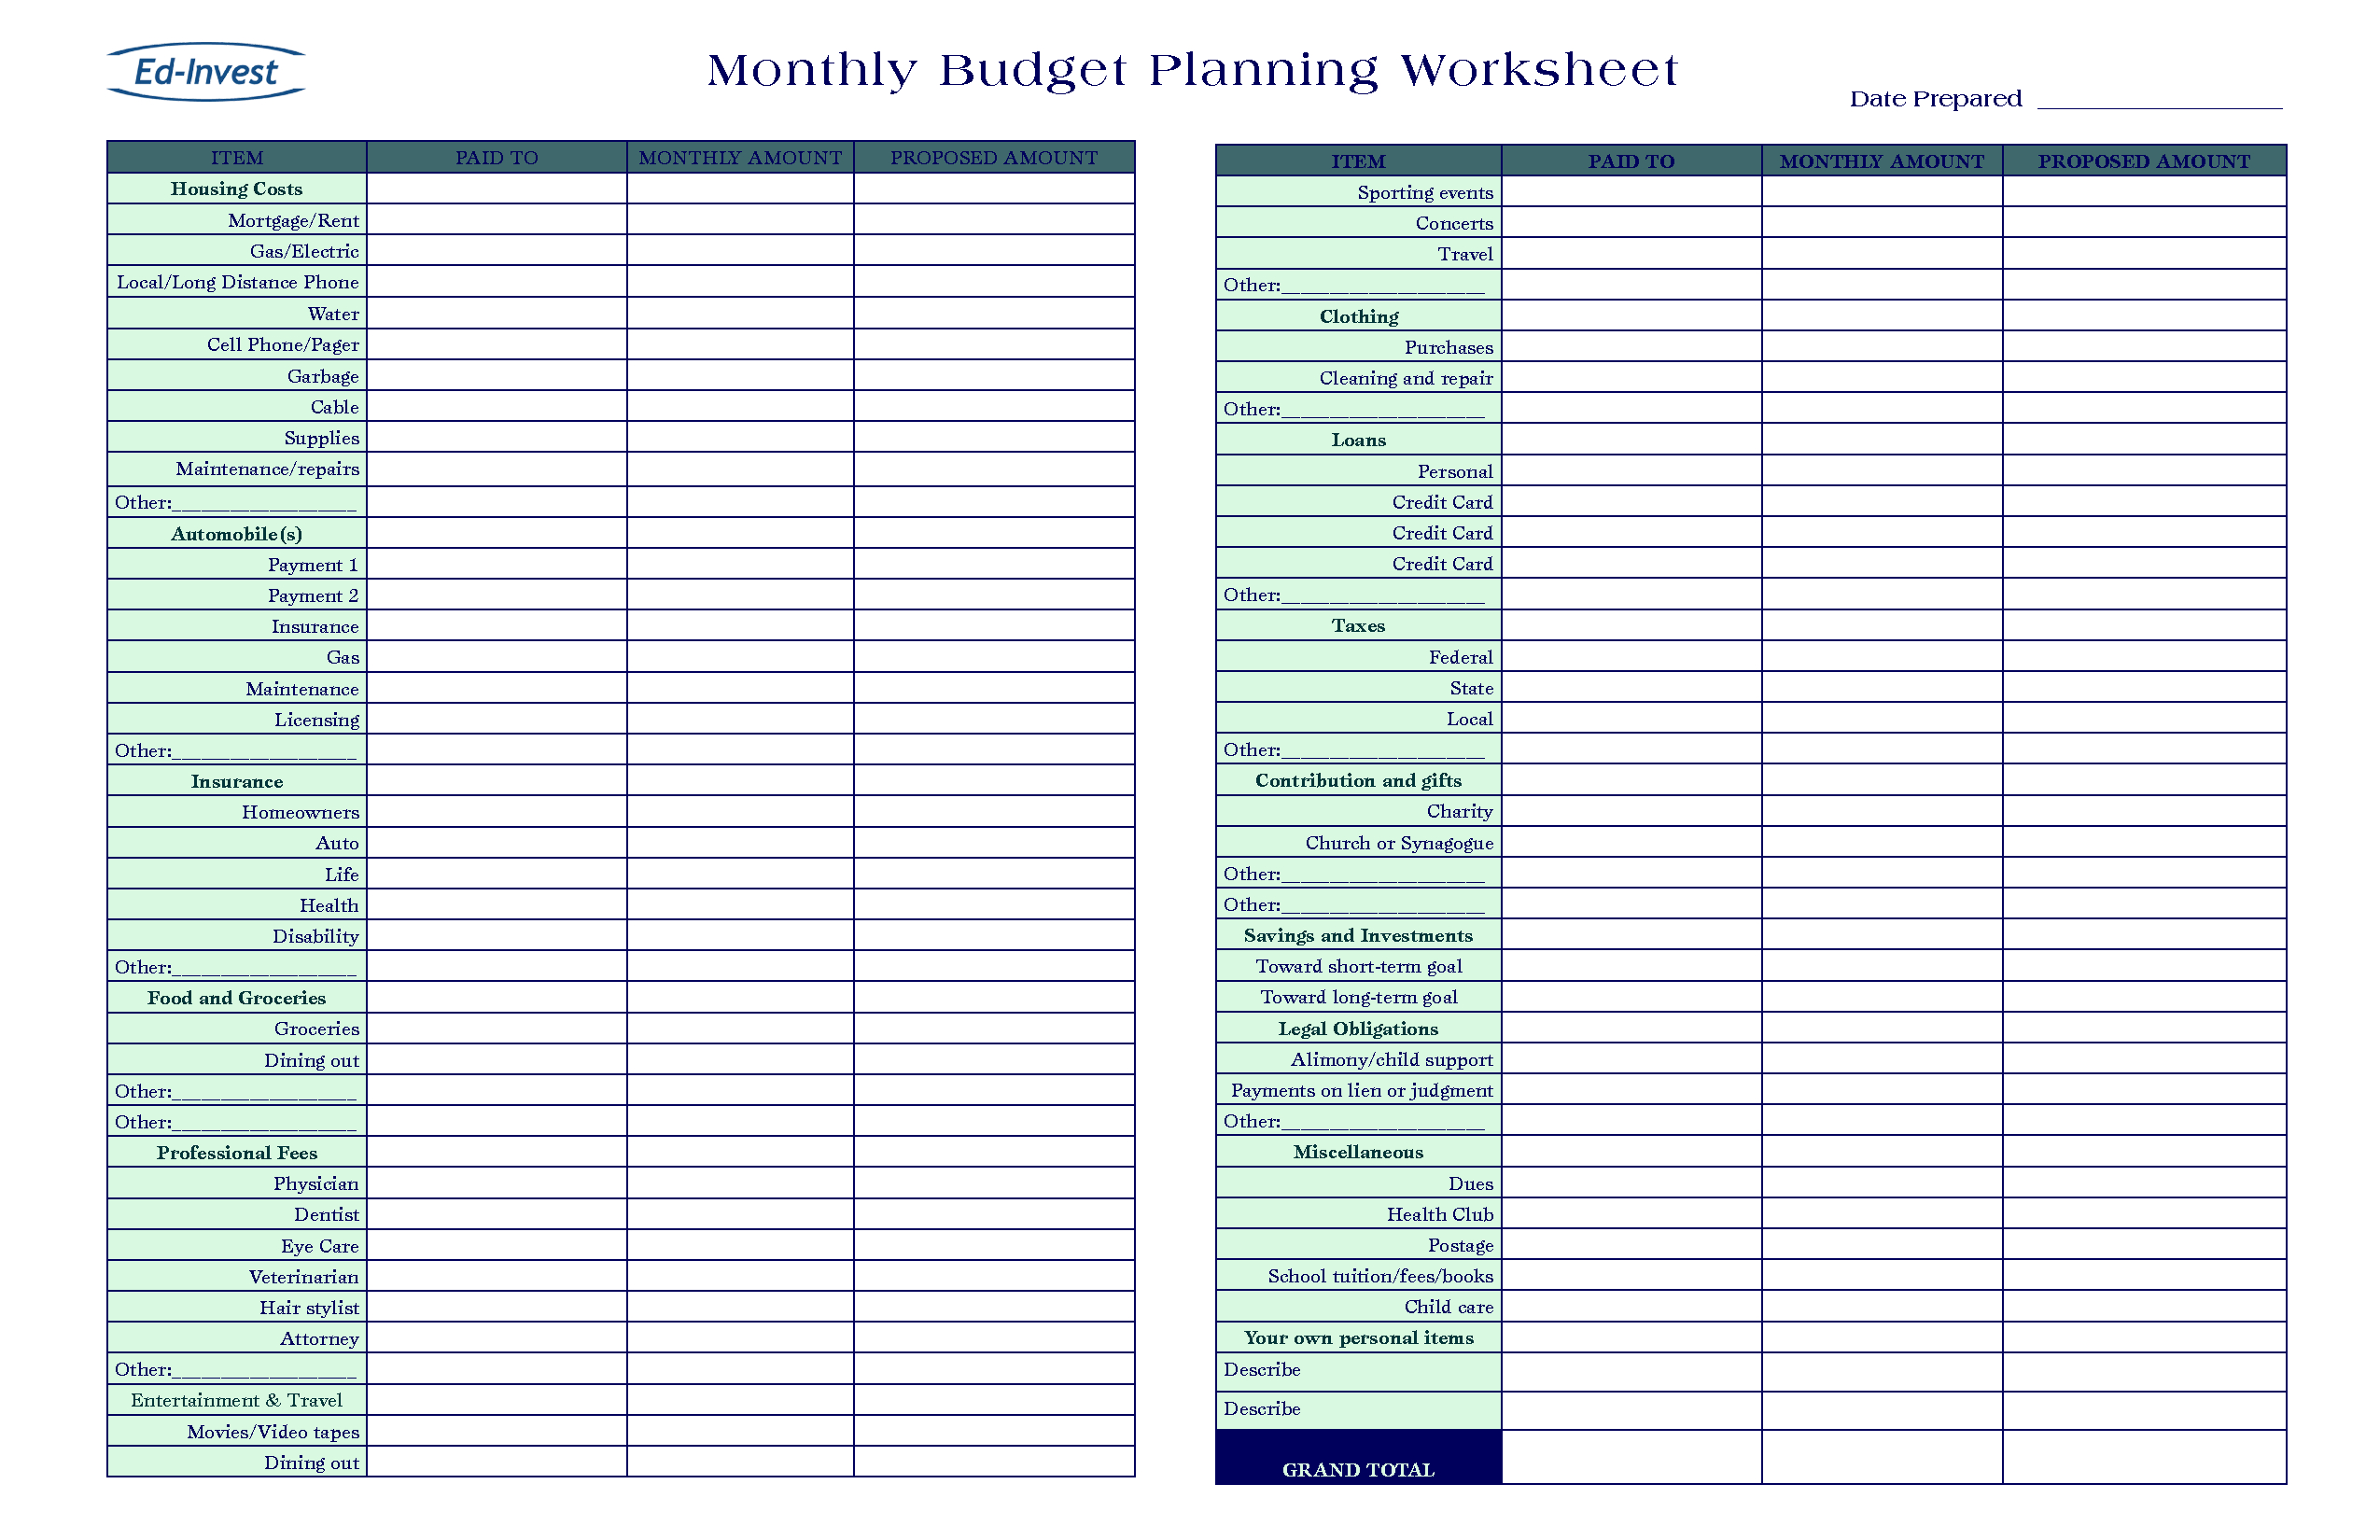 Spending Spreadsheet Google Docs Intended For Free Excel Consolidated Financial Statements Worksheet Template